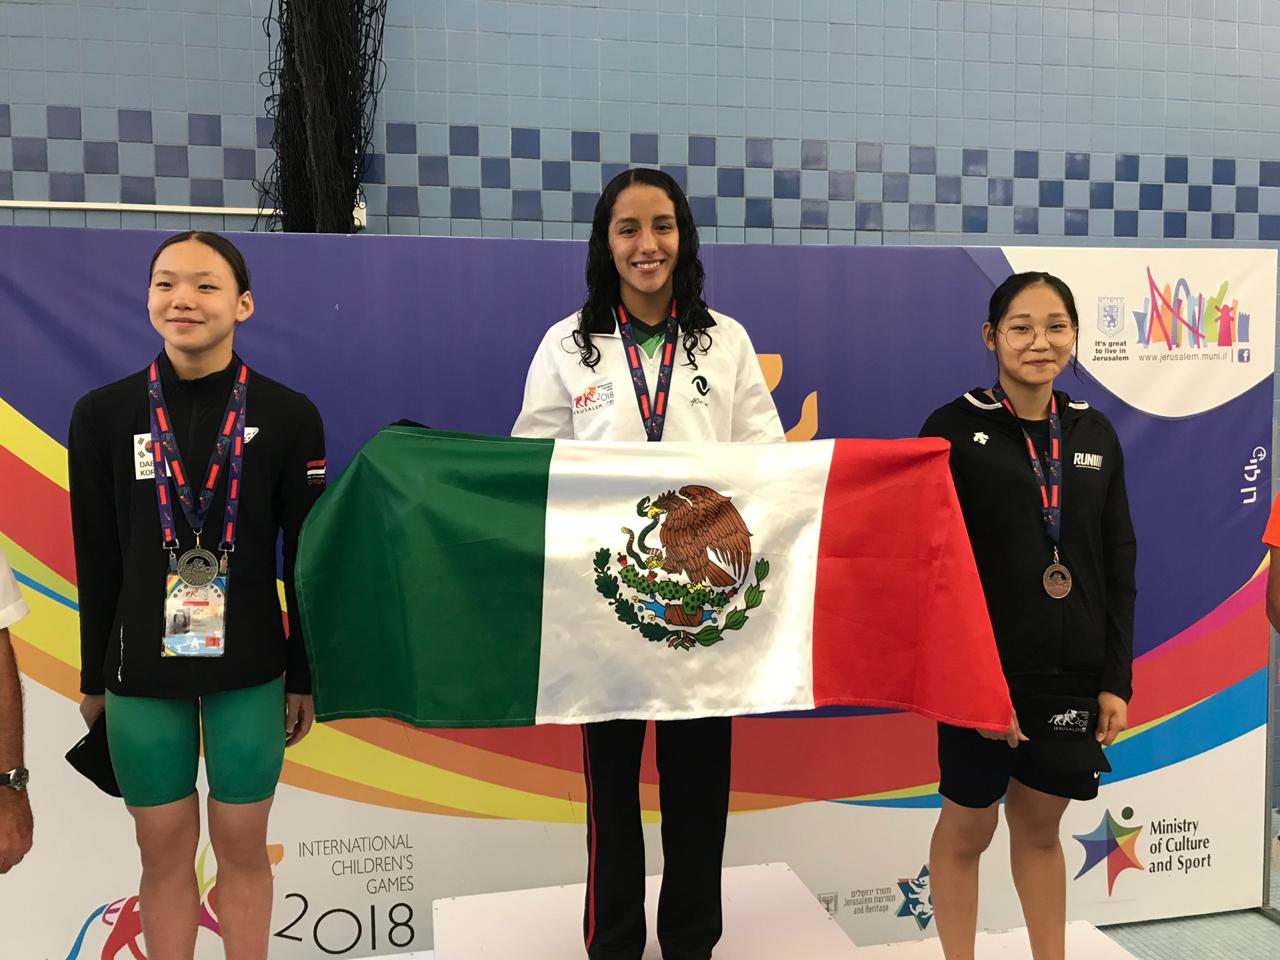 Caen primeras medallas en los International Children Games 2018